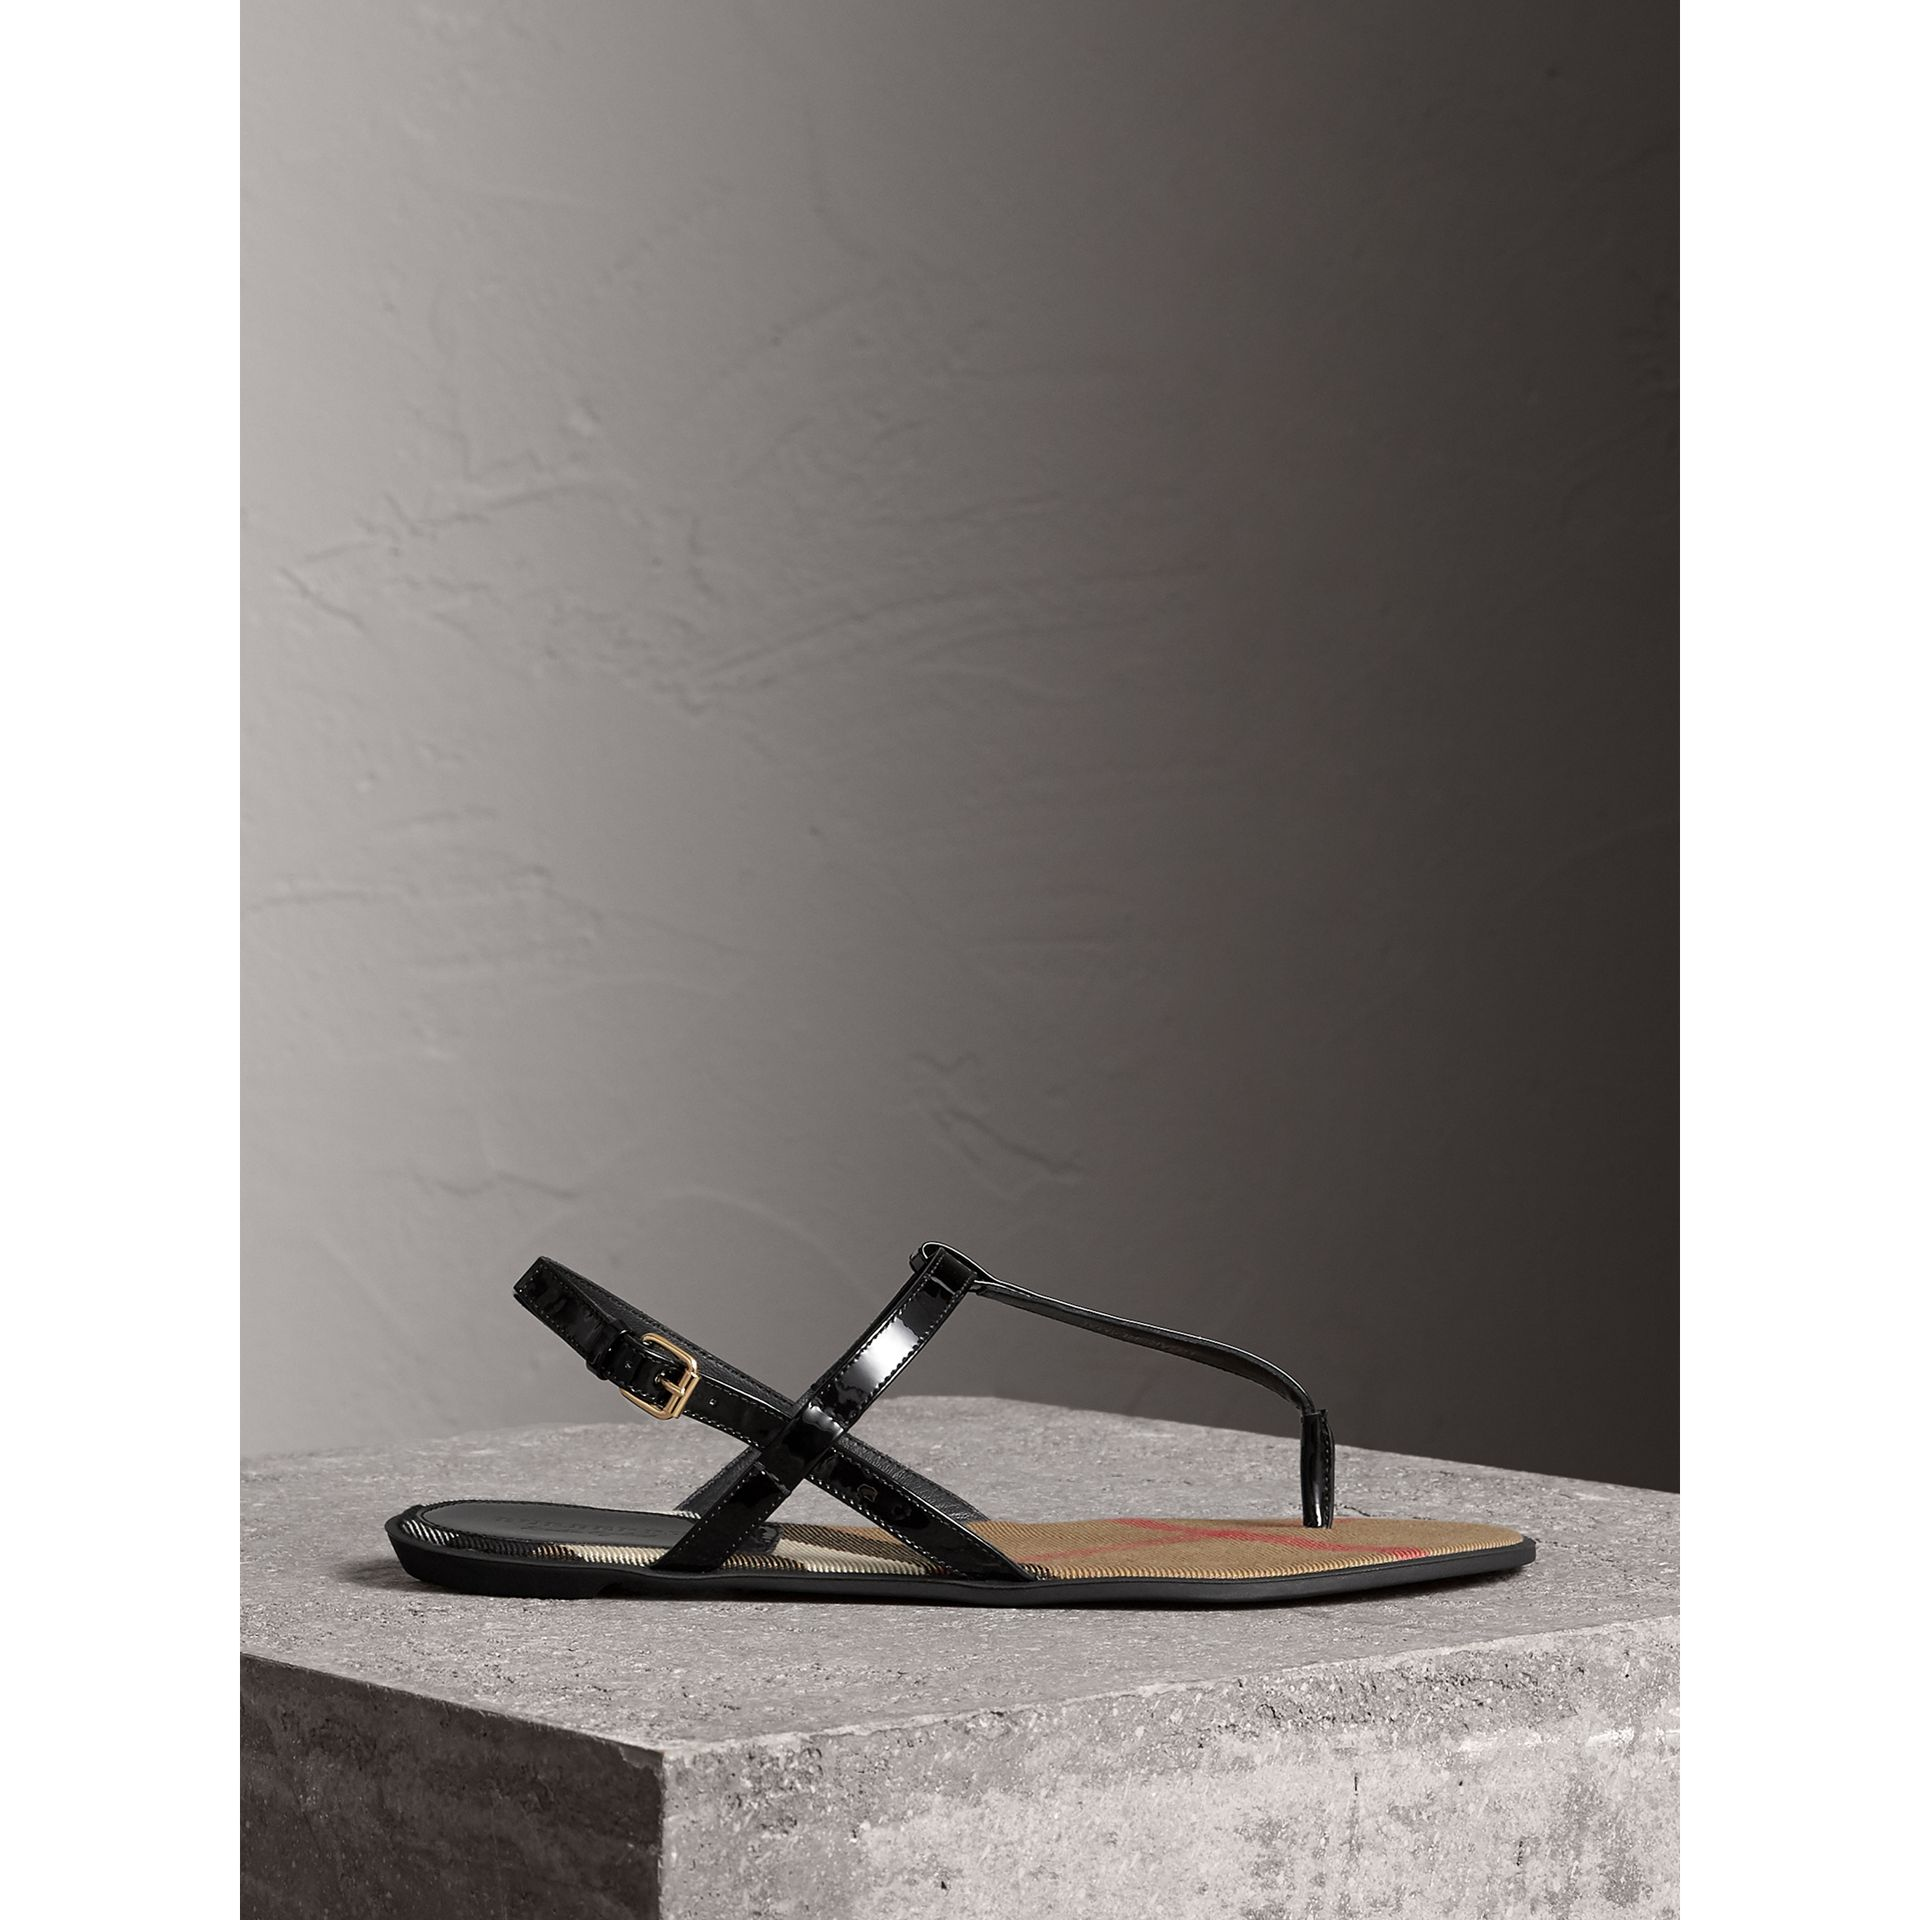 House Check-lined Leather Sandals in Black - Women | Burberry Australia - gallery image 4